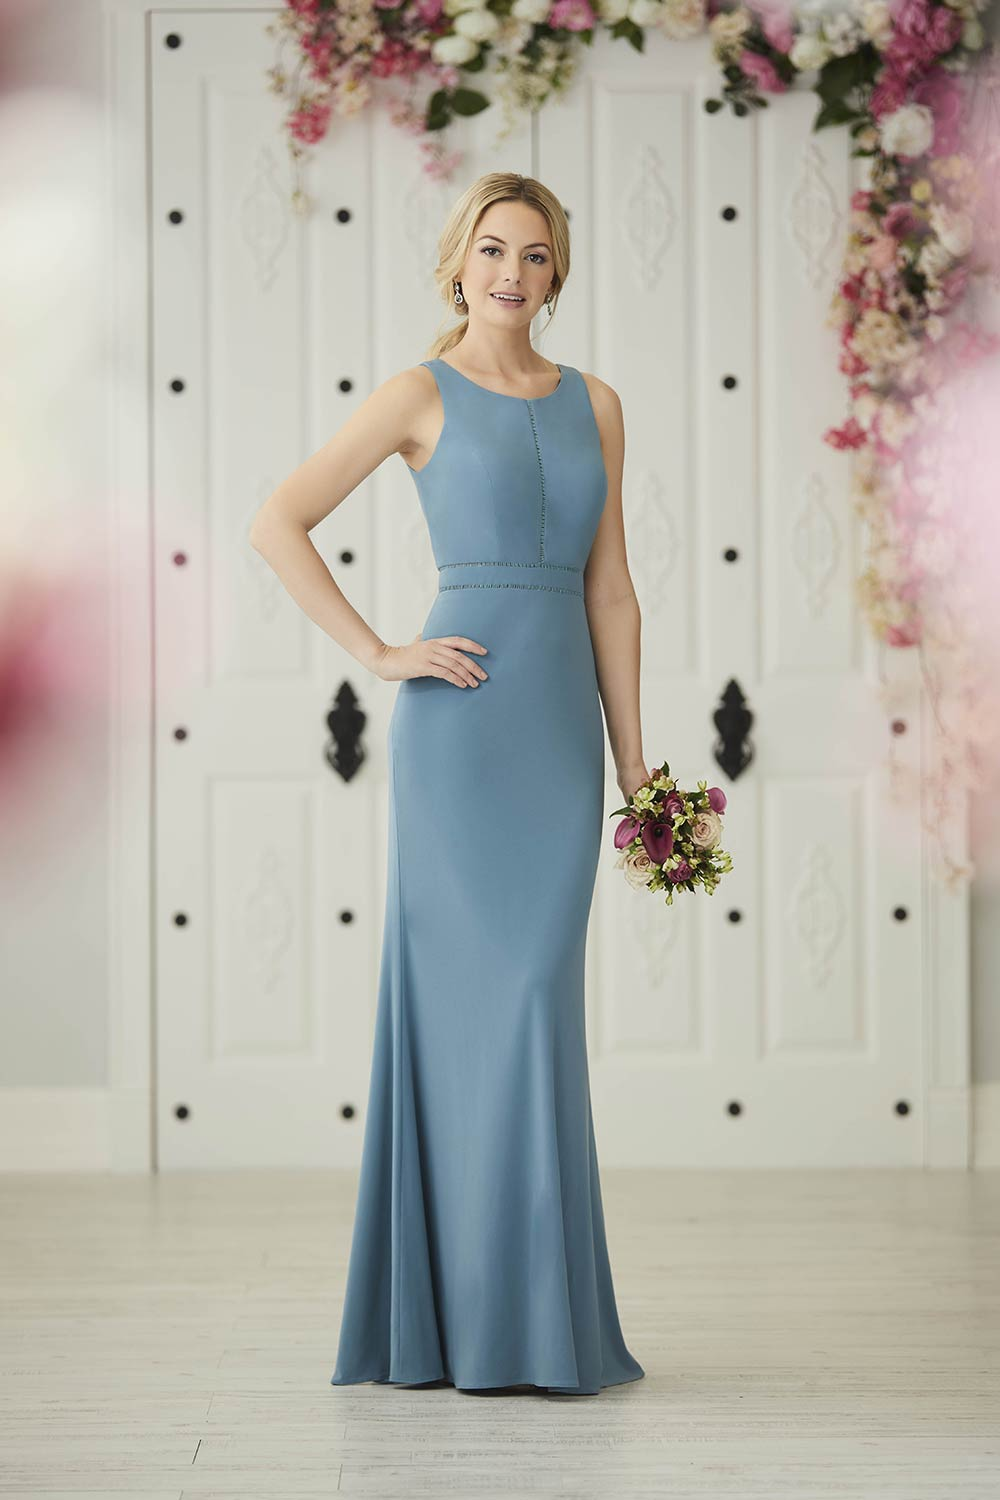 bridesmaid-dresses-jacquelin-bridals-canada-27297